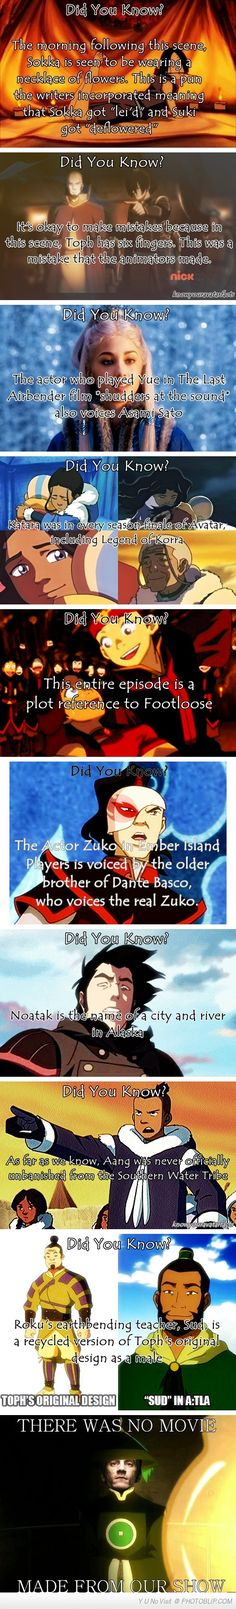 Avatar - The Last Airbender (and The Legend Of Korra) Fun Facts